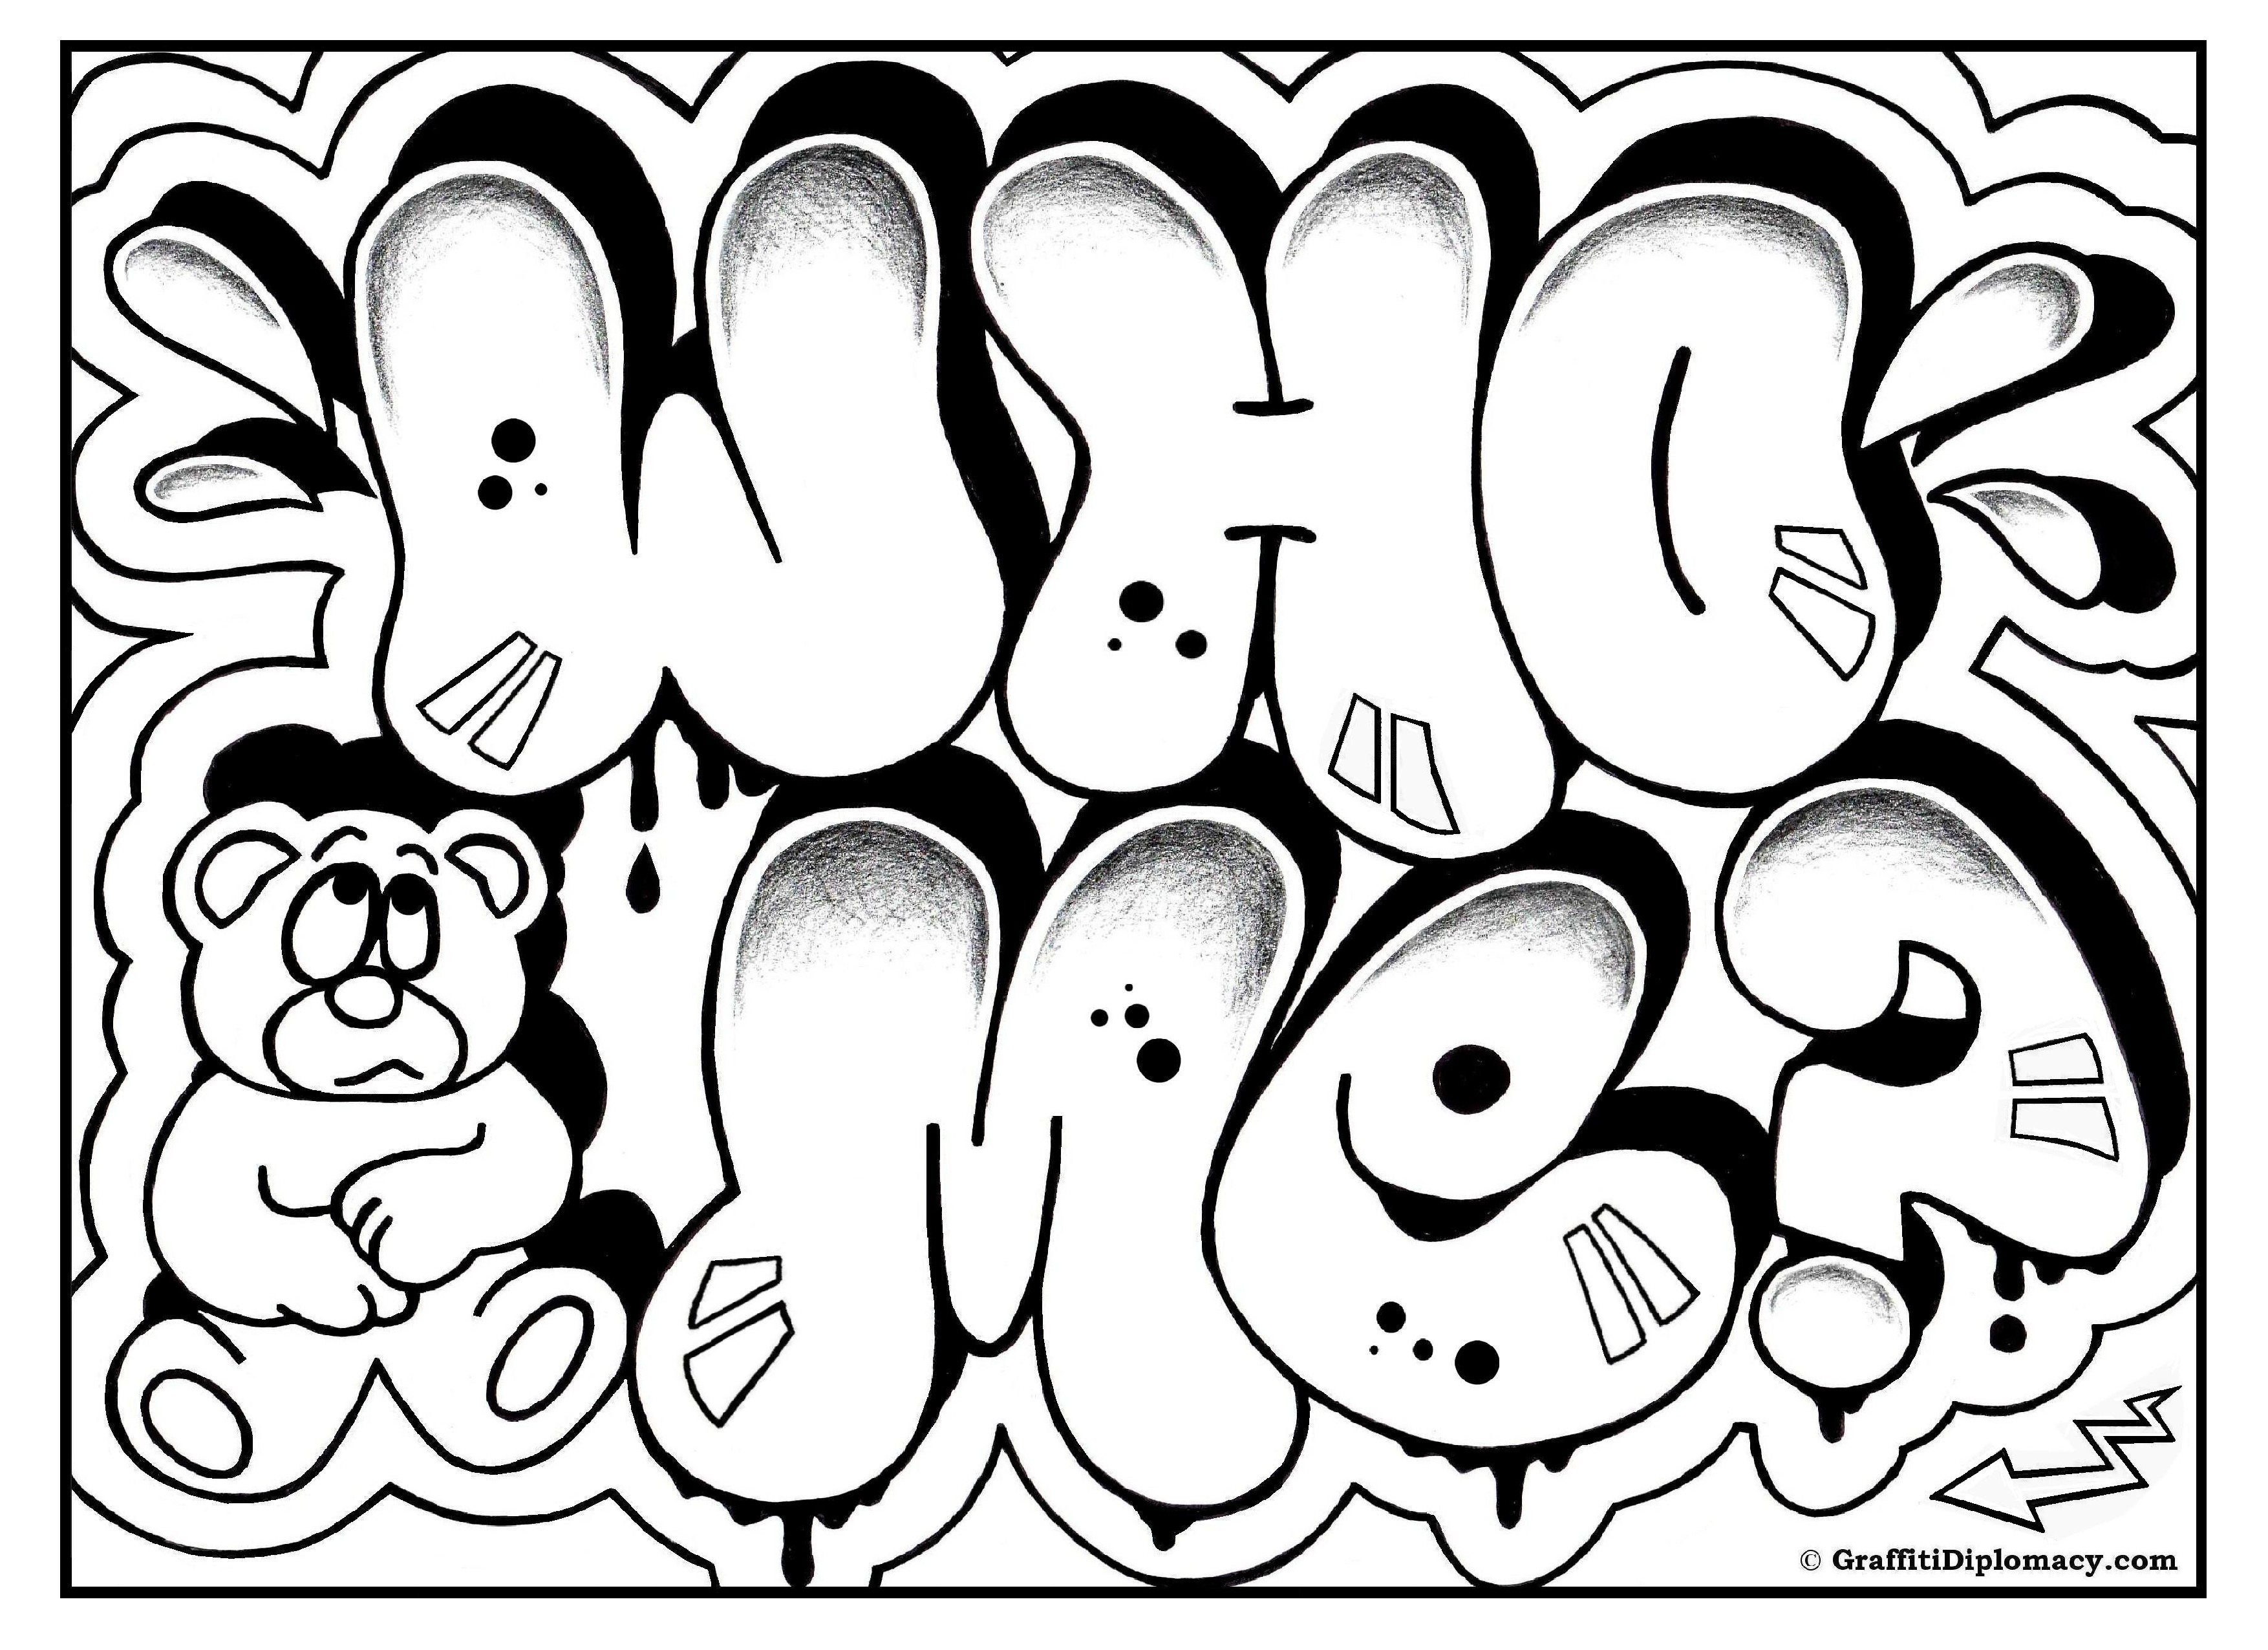 Graffiti Letters Coloring Pages.